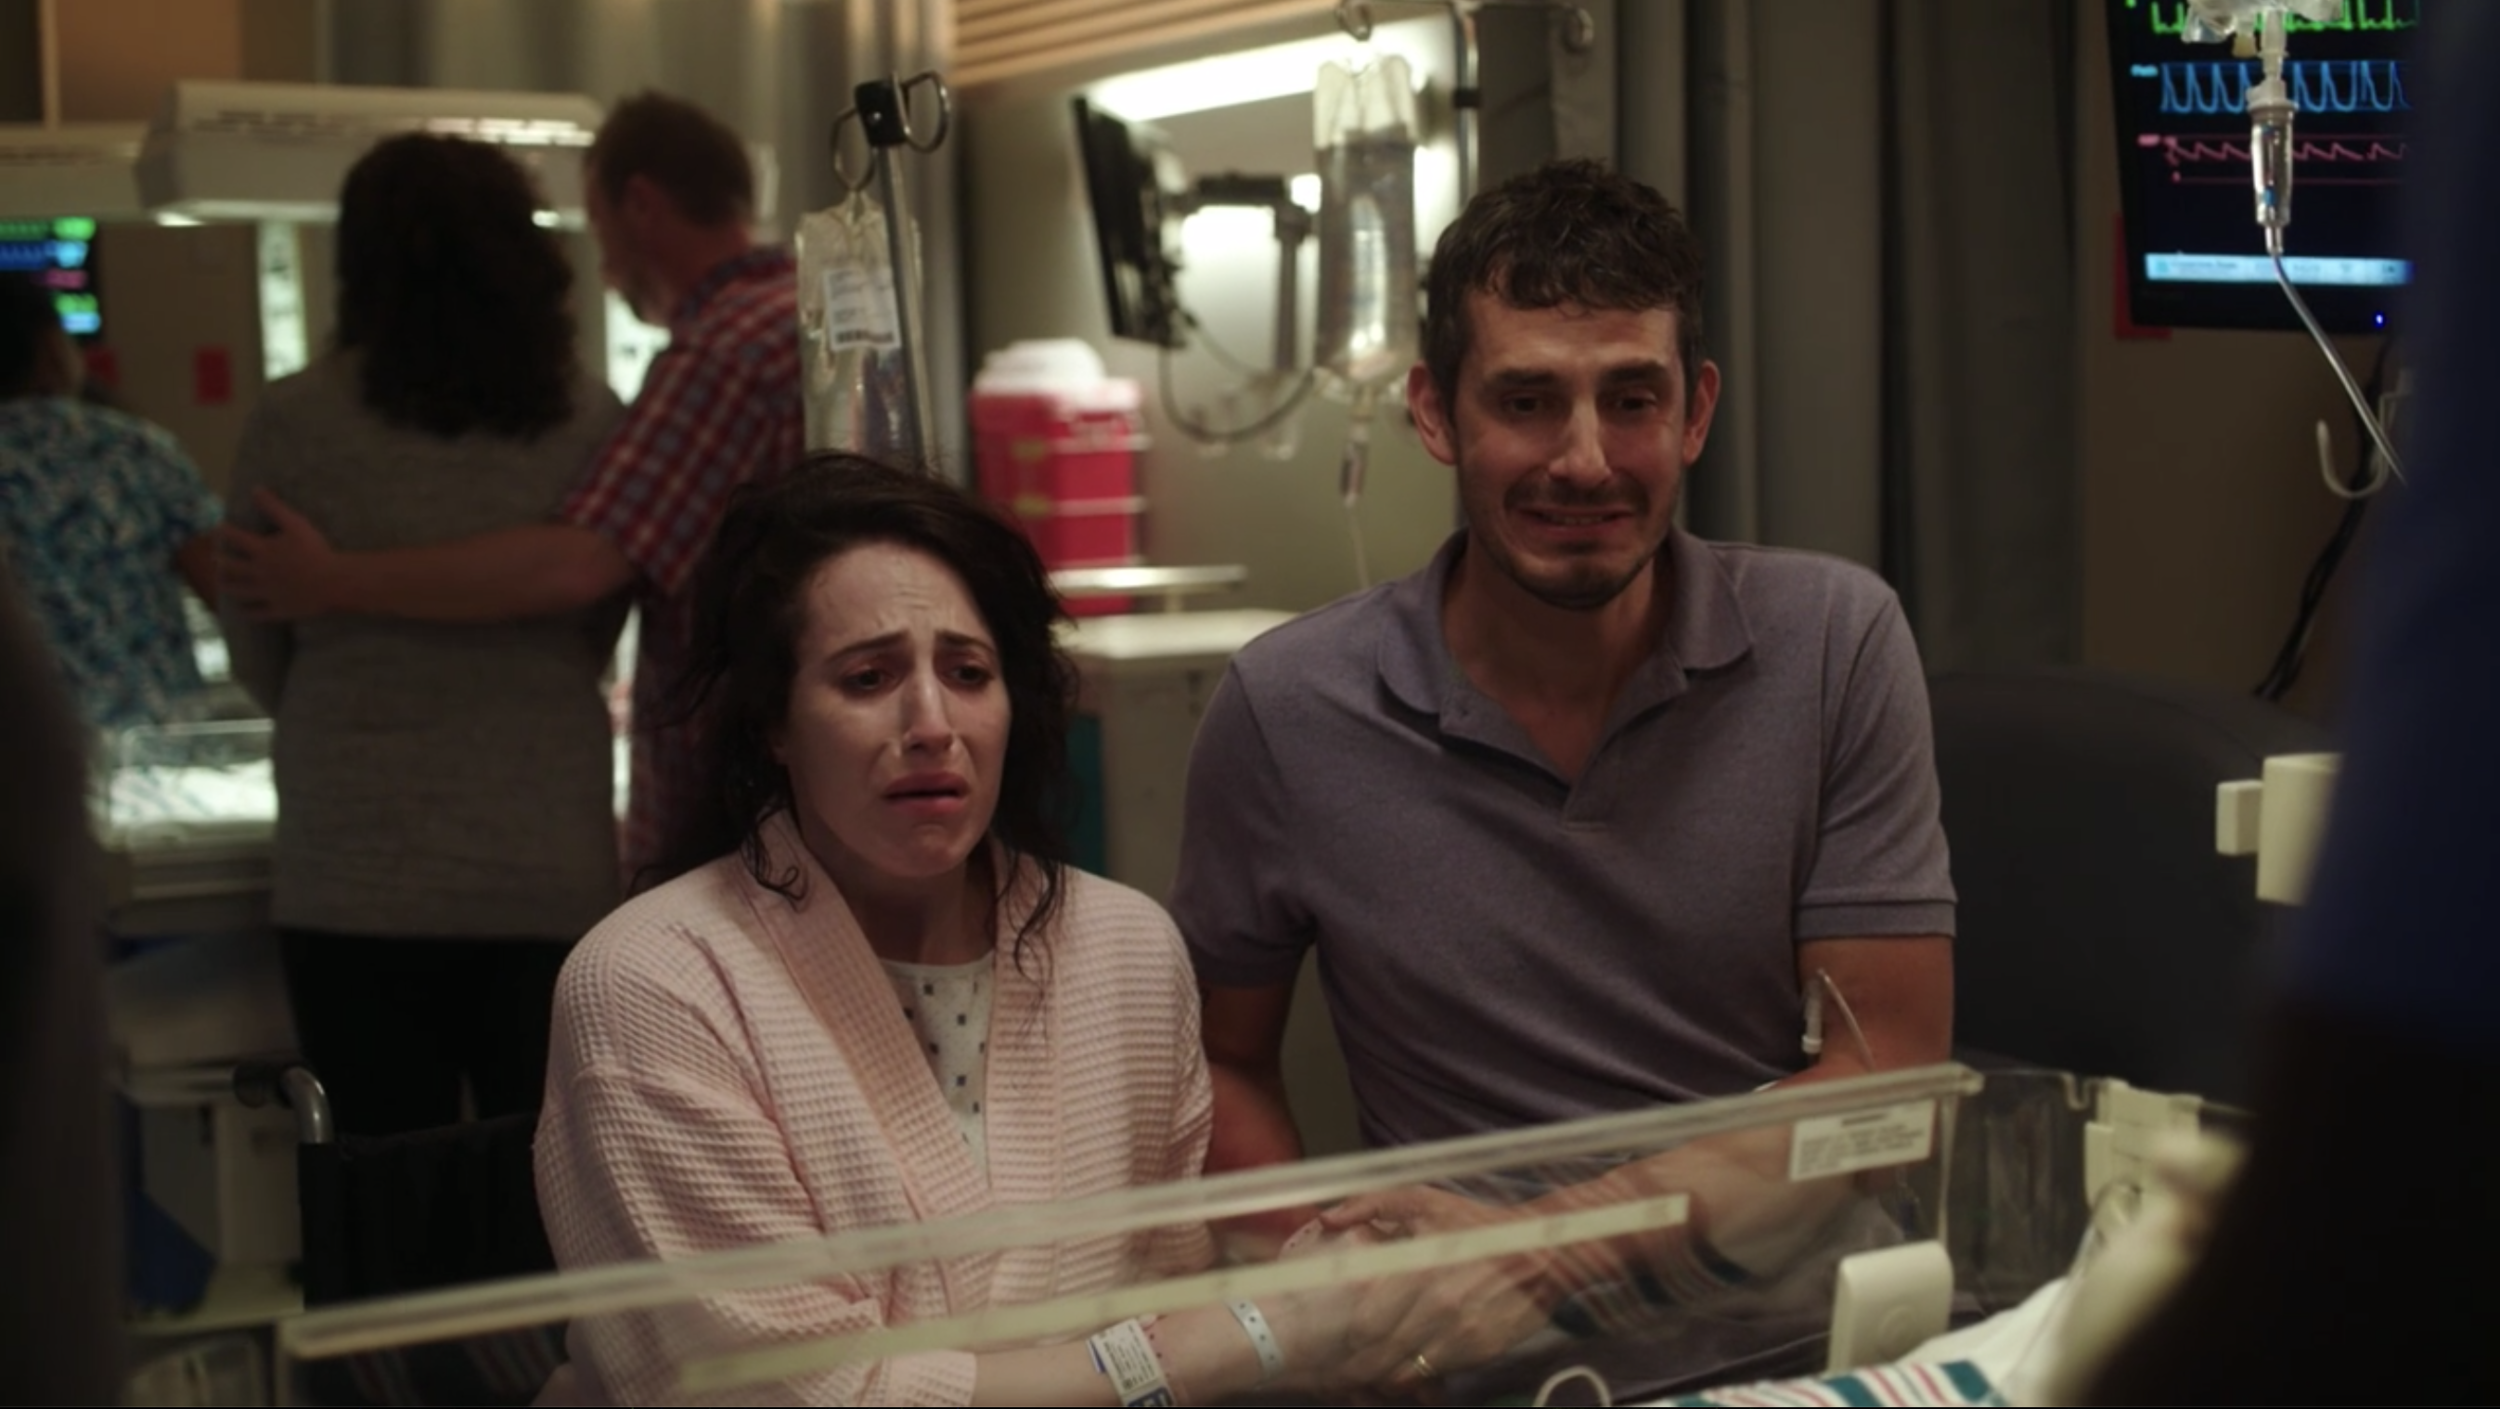 Adrienne_Whitney_Papp_The_ Resident_AdrienneWhitneyPapp_TheResident_S2E1_18.png